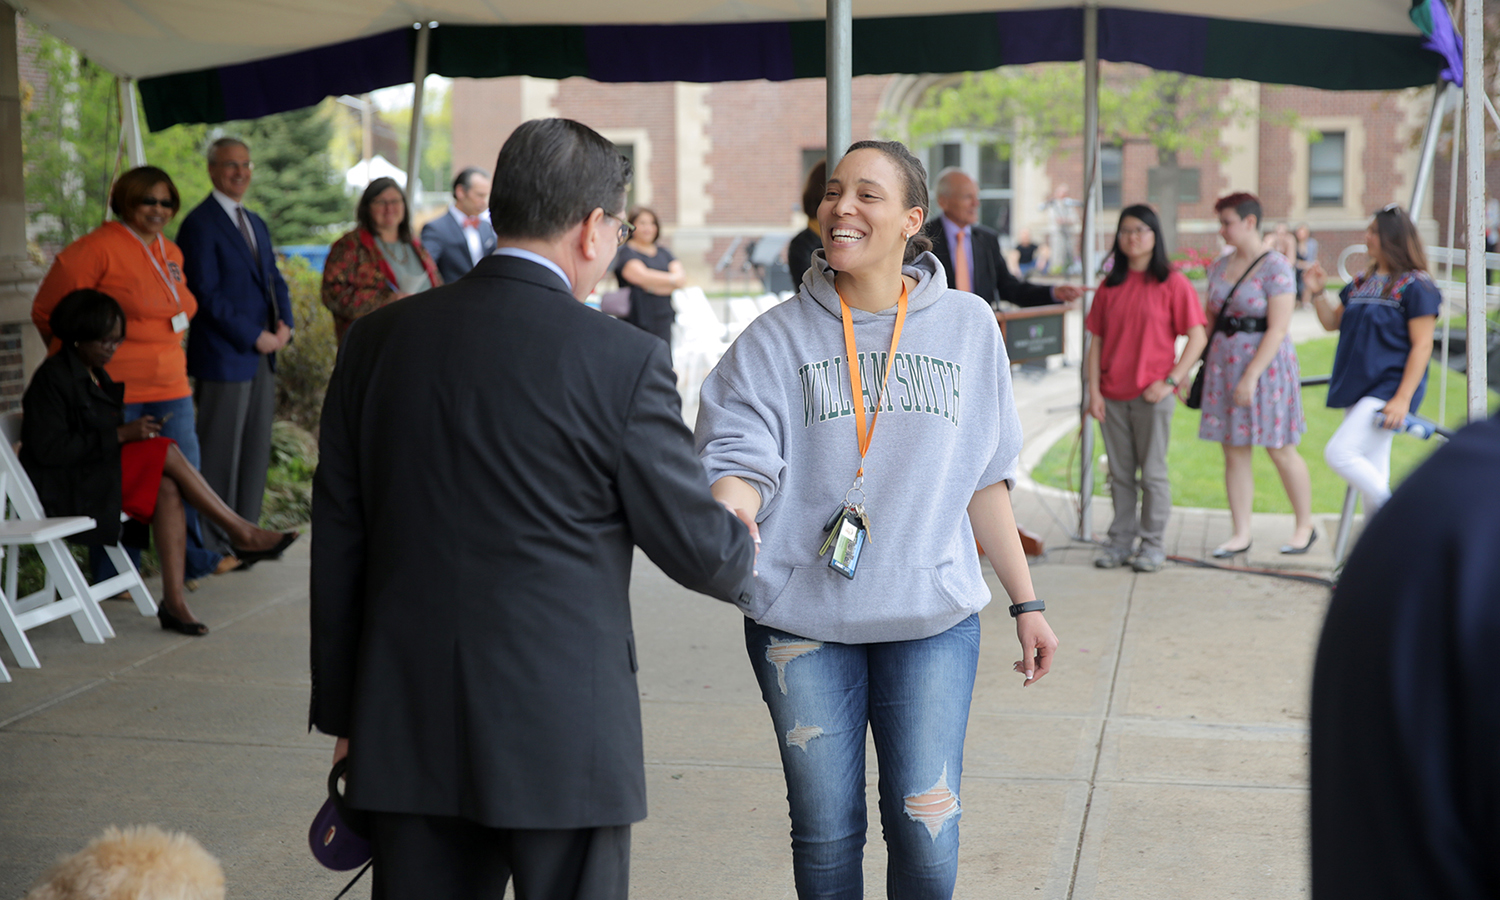 Gabbie Grimmett '17 shakes hands with President Mark D. Gearan during rehearsal for Commencement on the Quad.